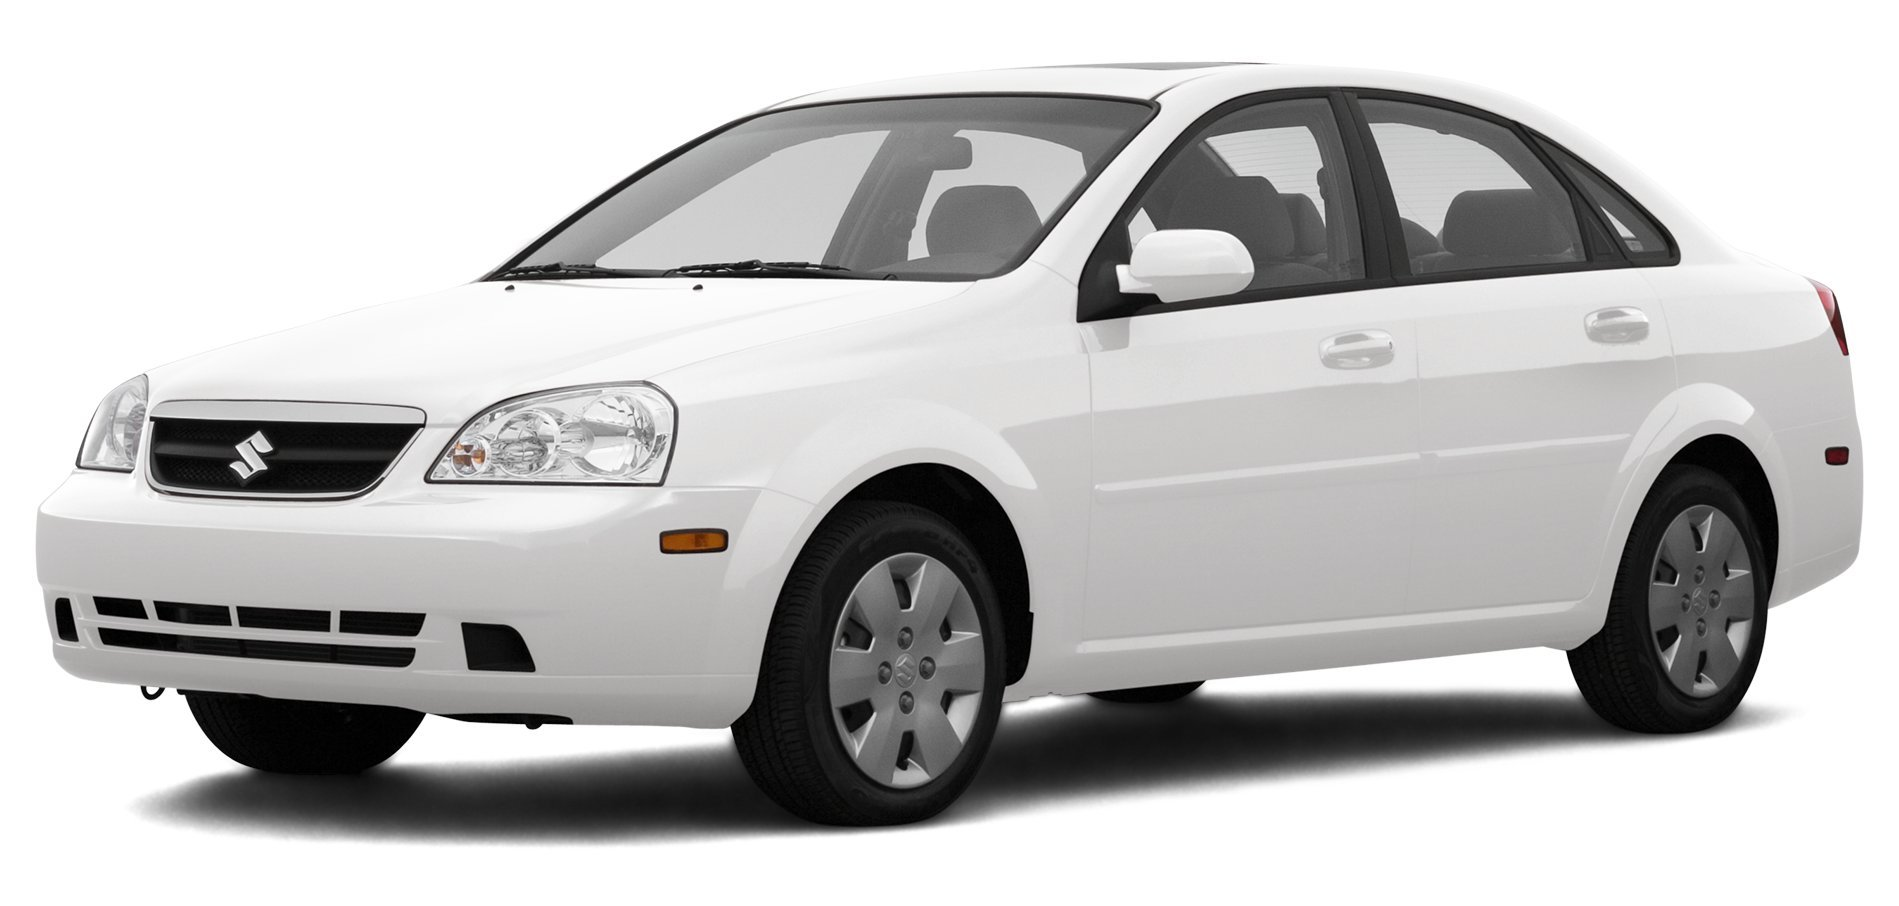 2007 Suzuki Forenza, 4-Door Sedan Automatic Transmission ...